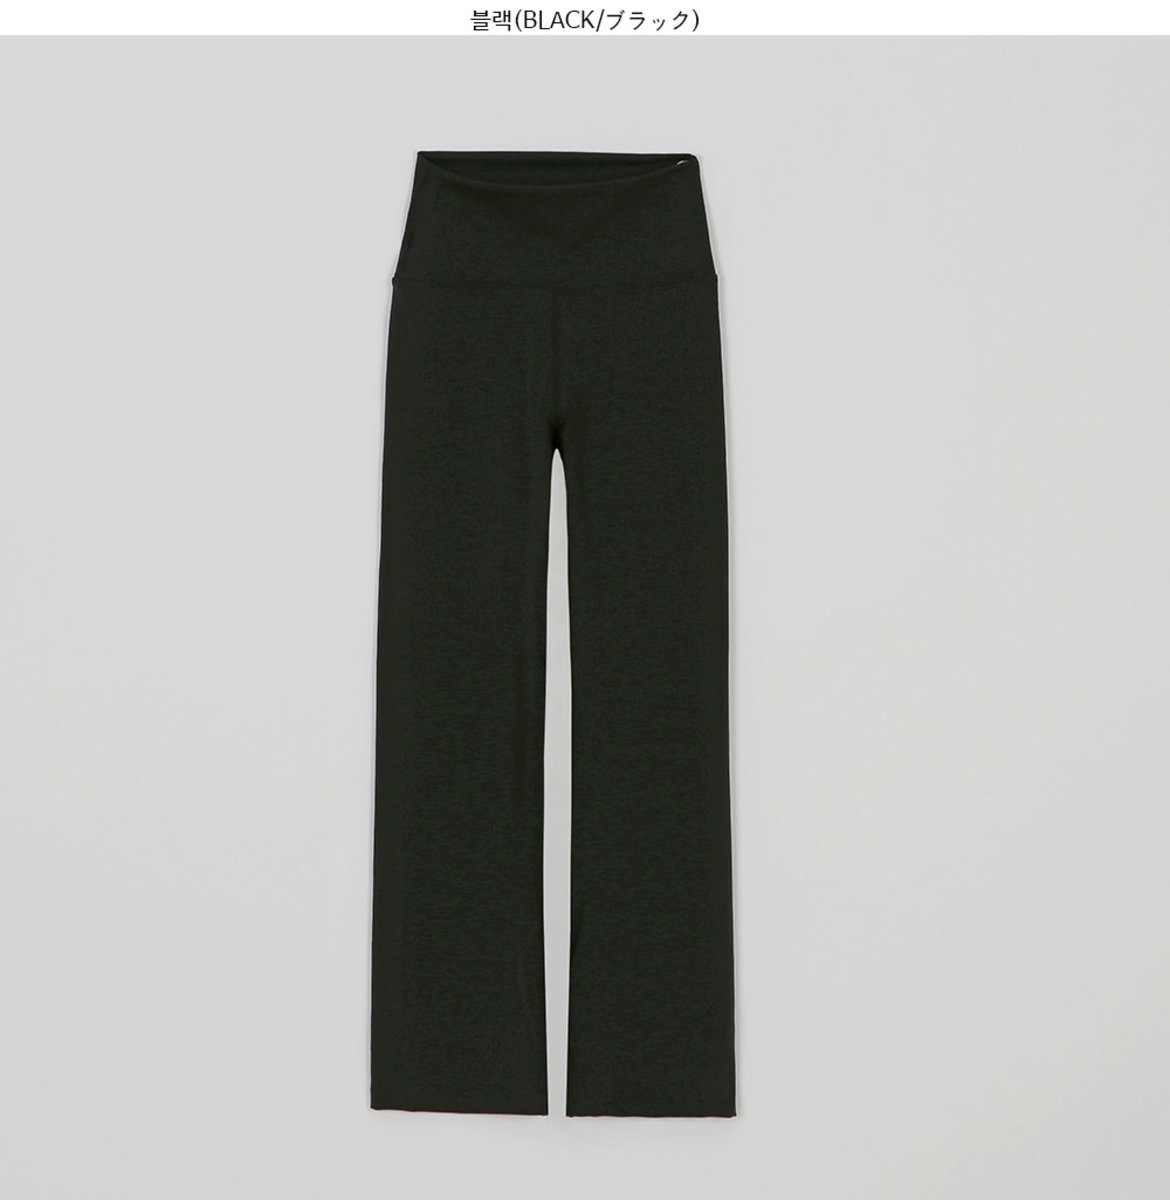 Banded Waist Stretchy Pants